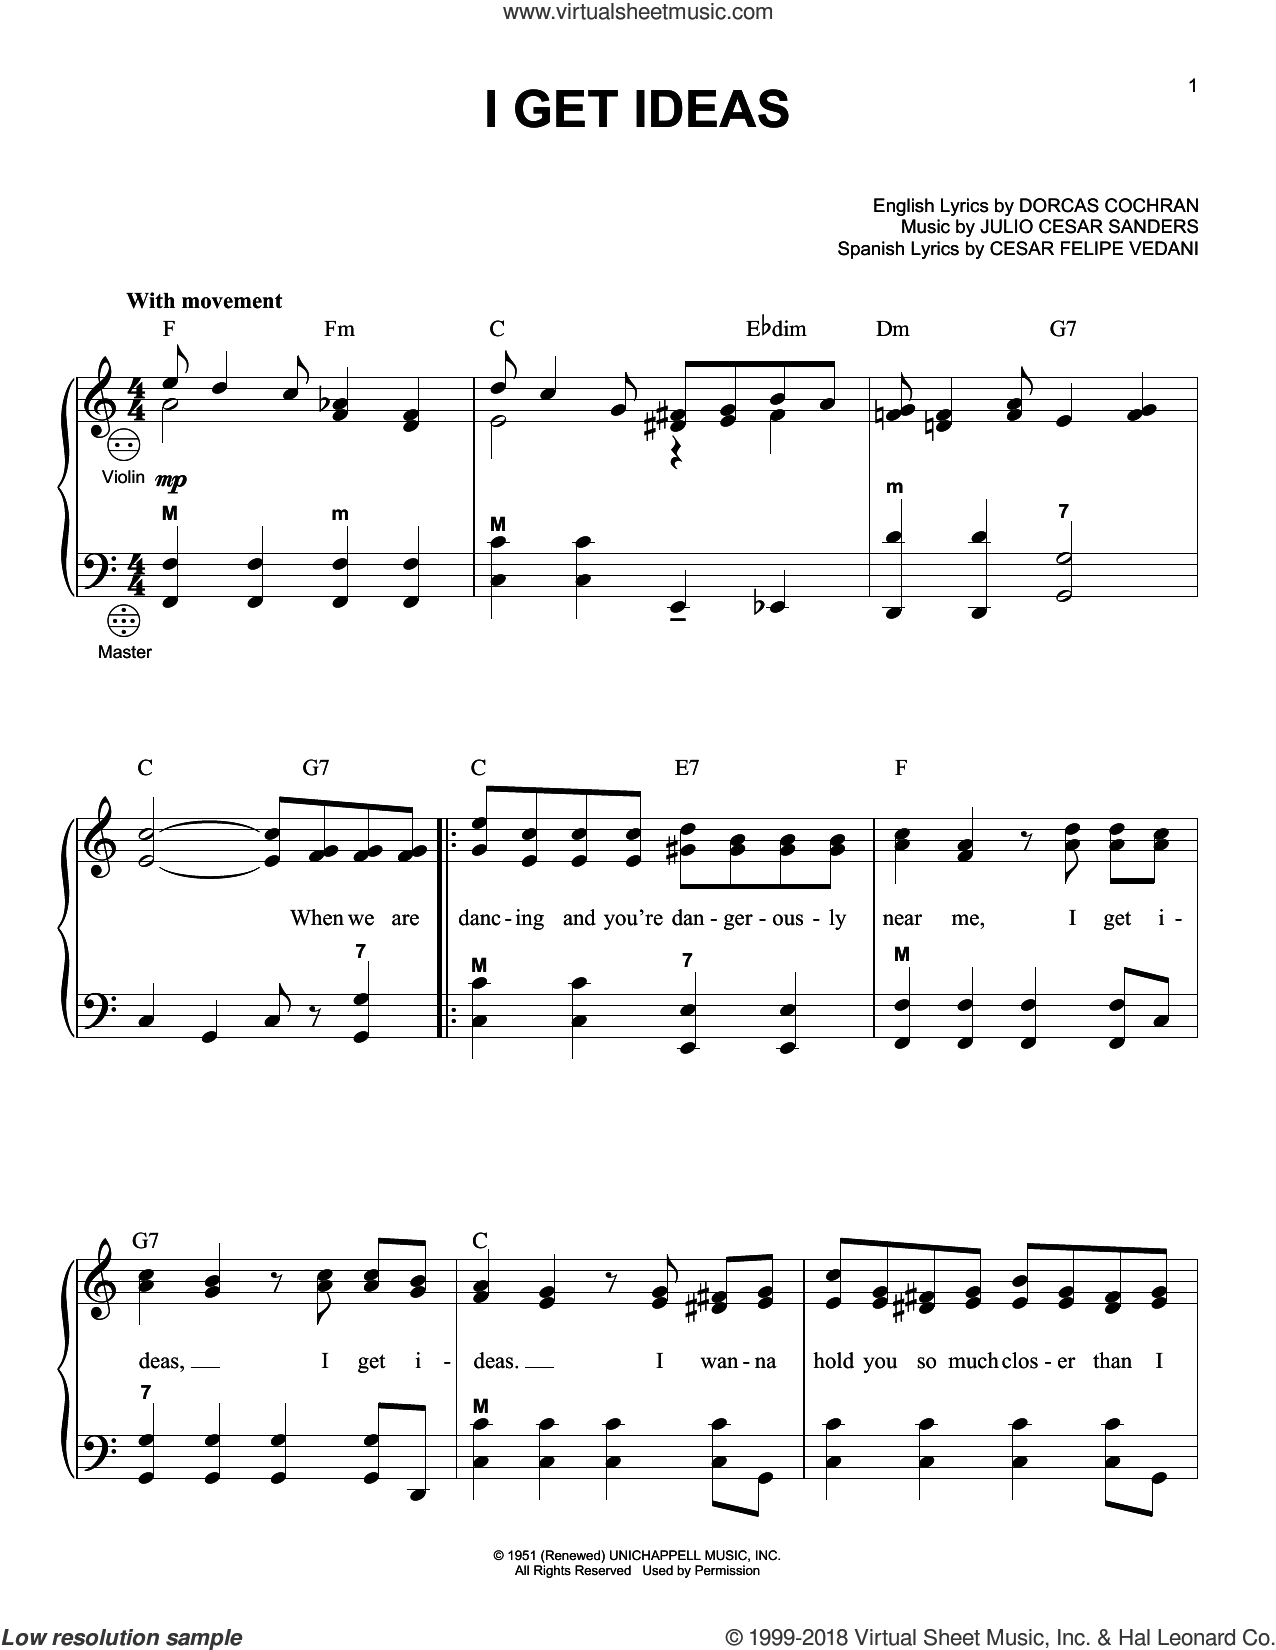 I Get Ideas sheet music for accordion by Julio Cesar Sanders, Gary Meisner and Dorcas Cochran. Score Image Preview.